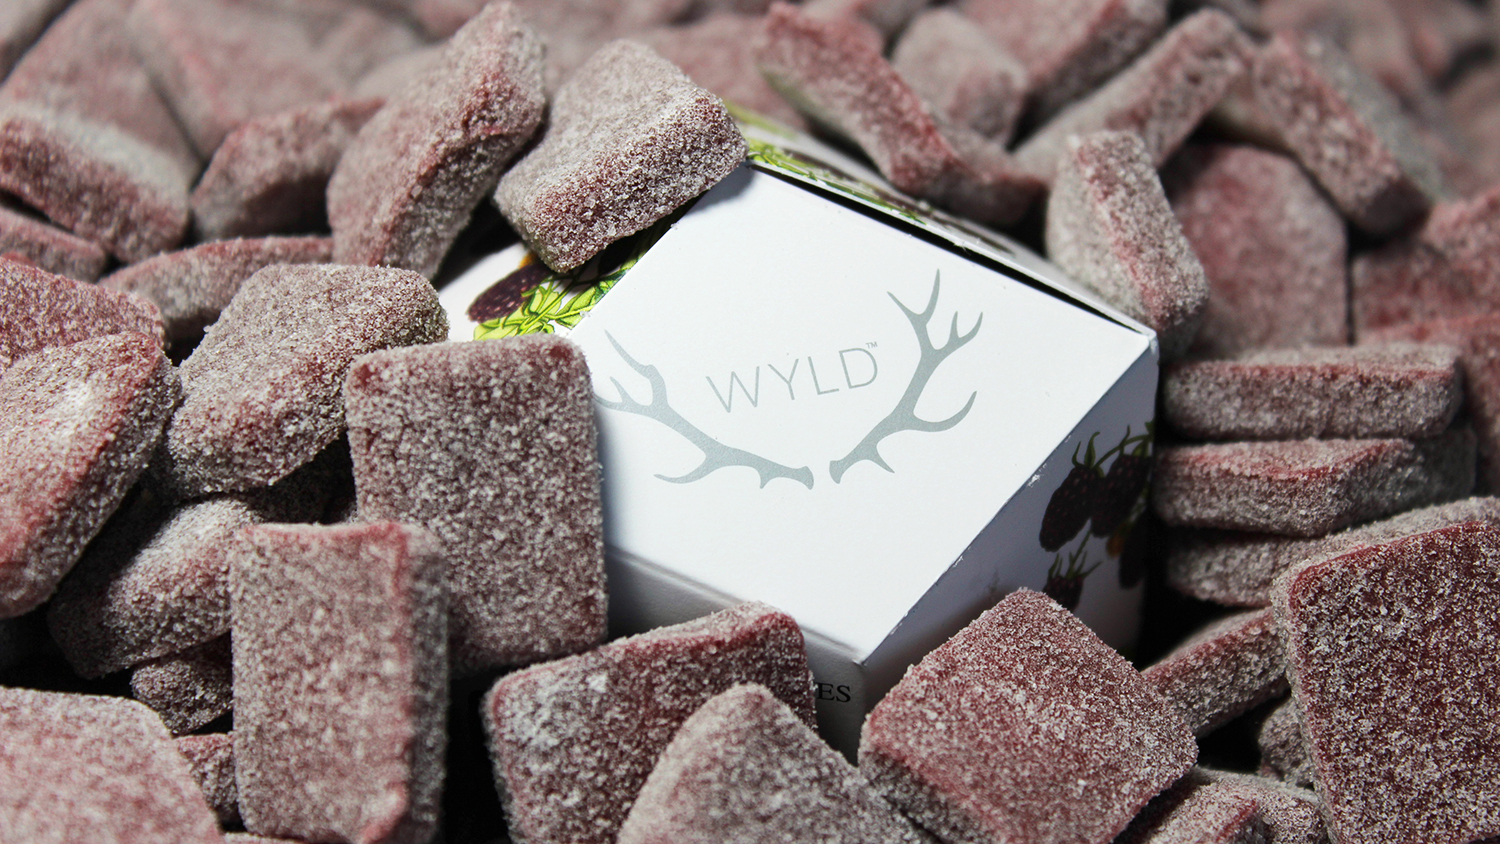 Wyld Canna Marionberry